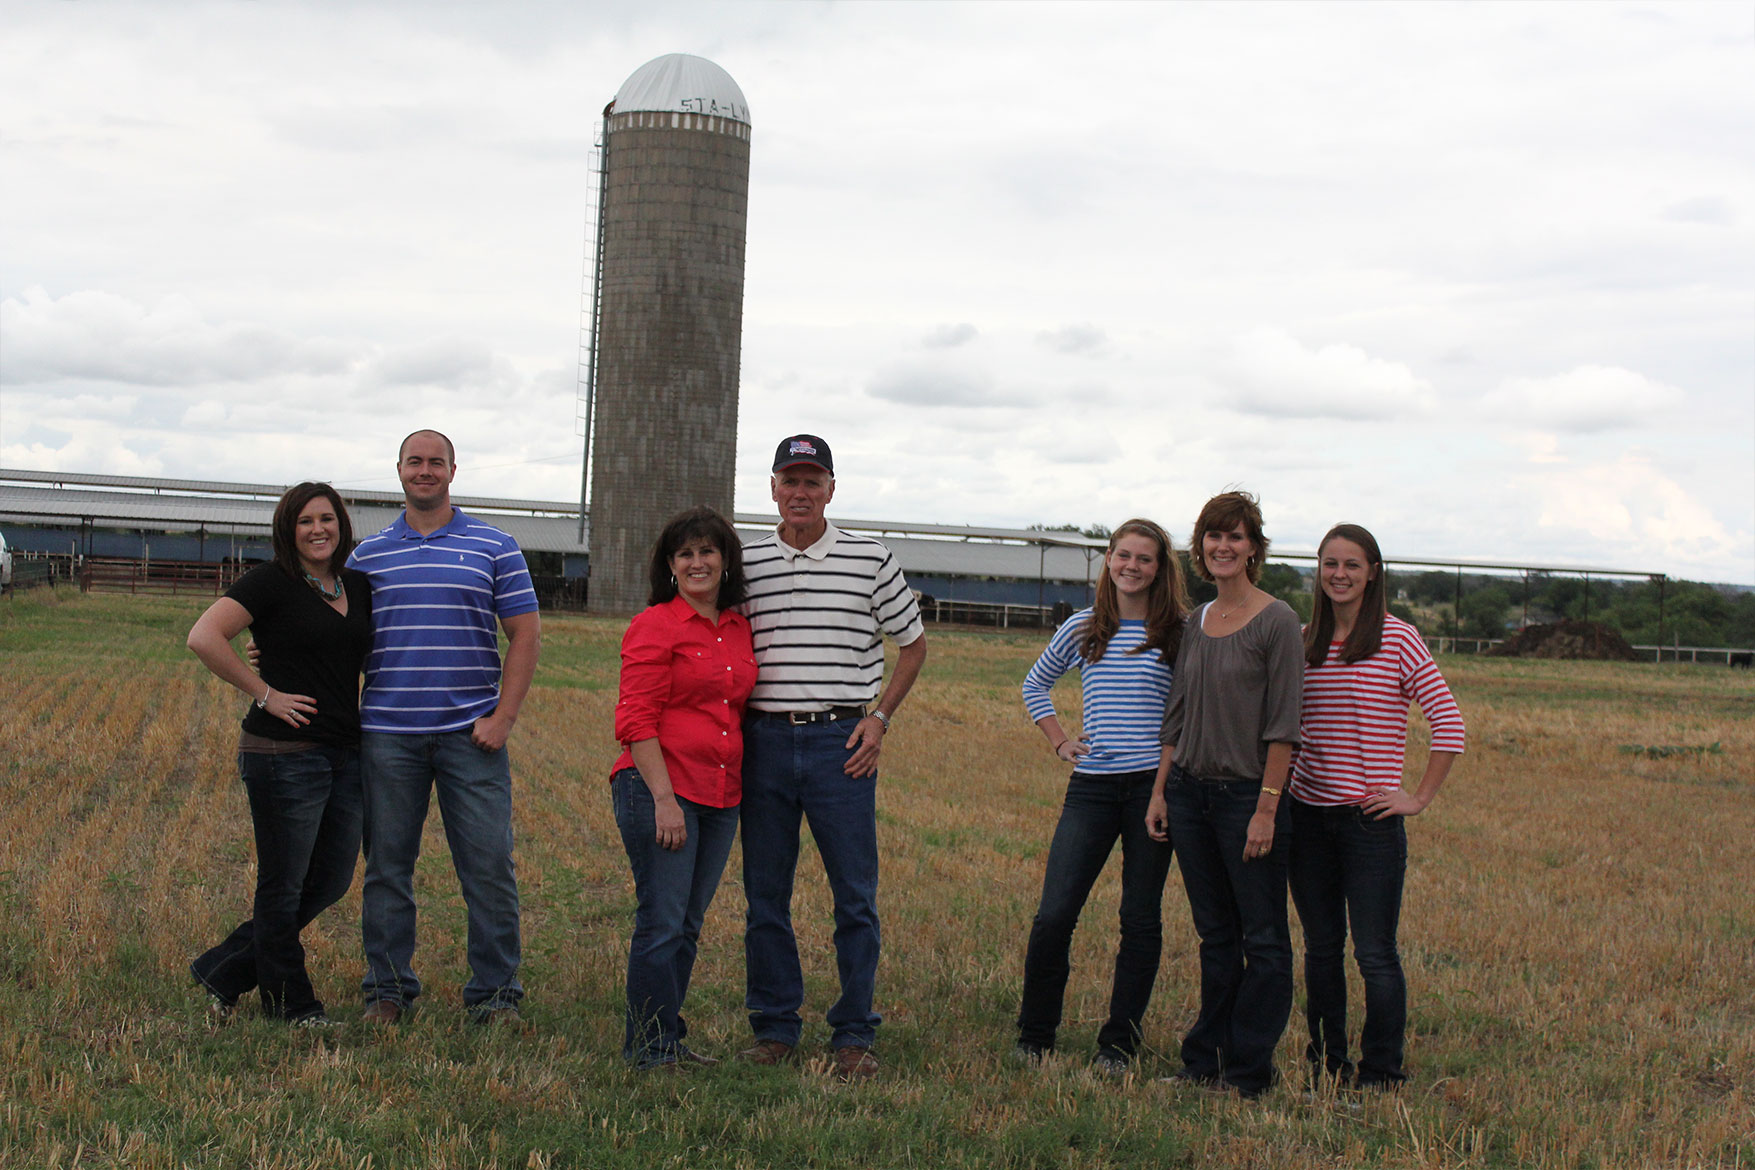 The whole Haedge family poses for a photo in front of the dairy.